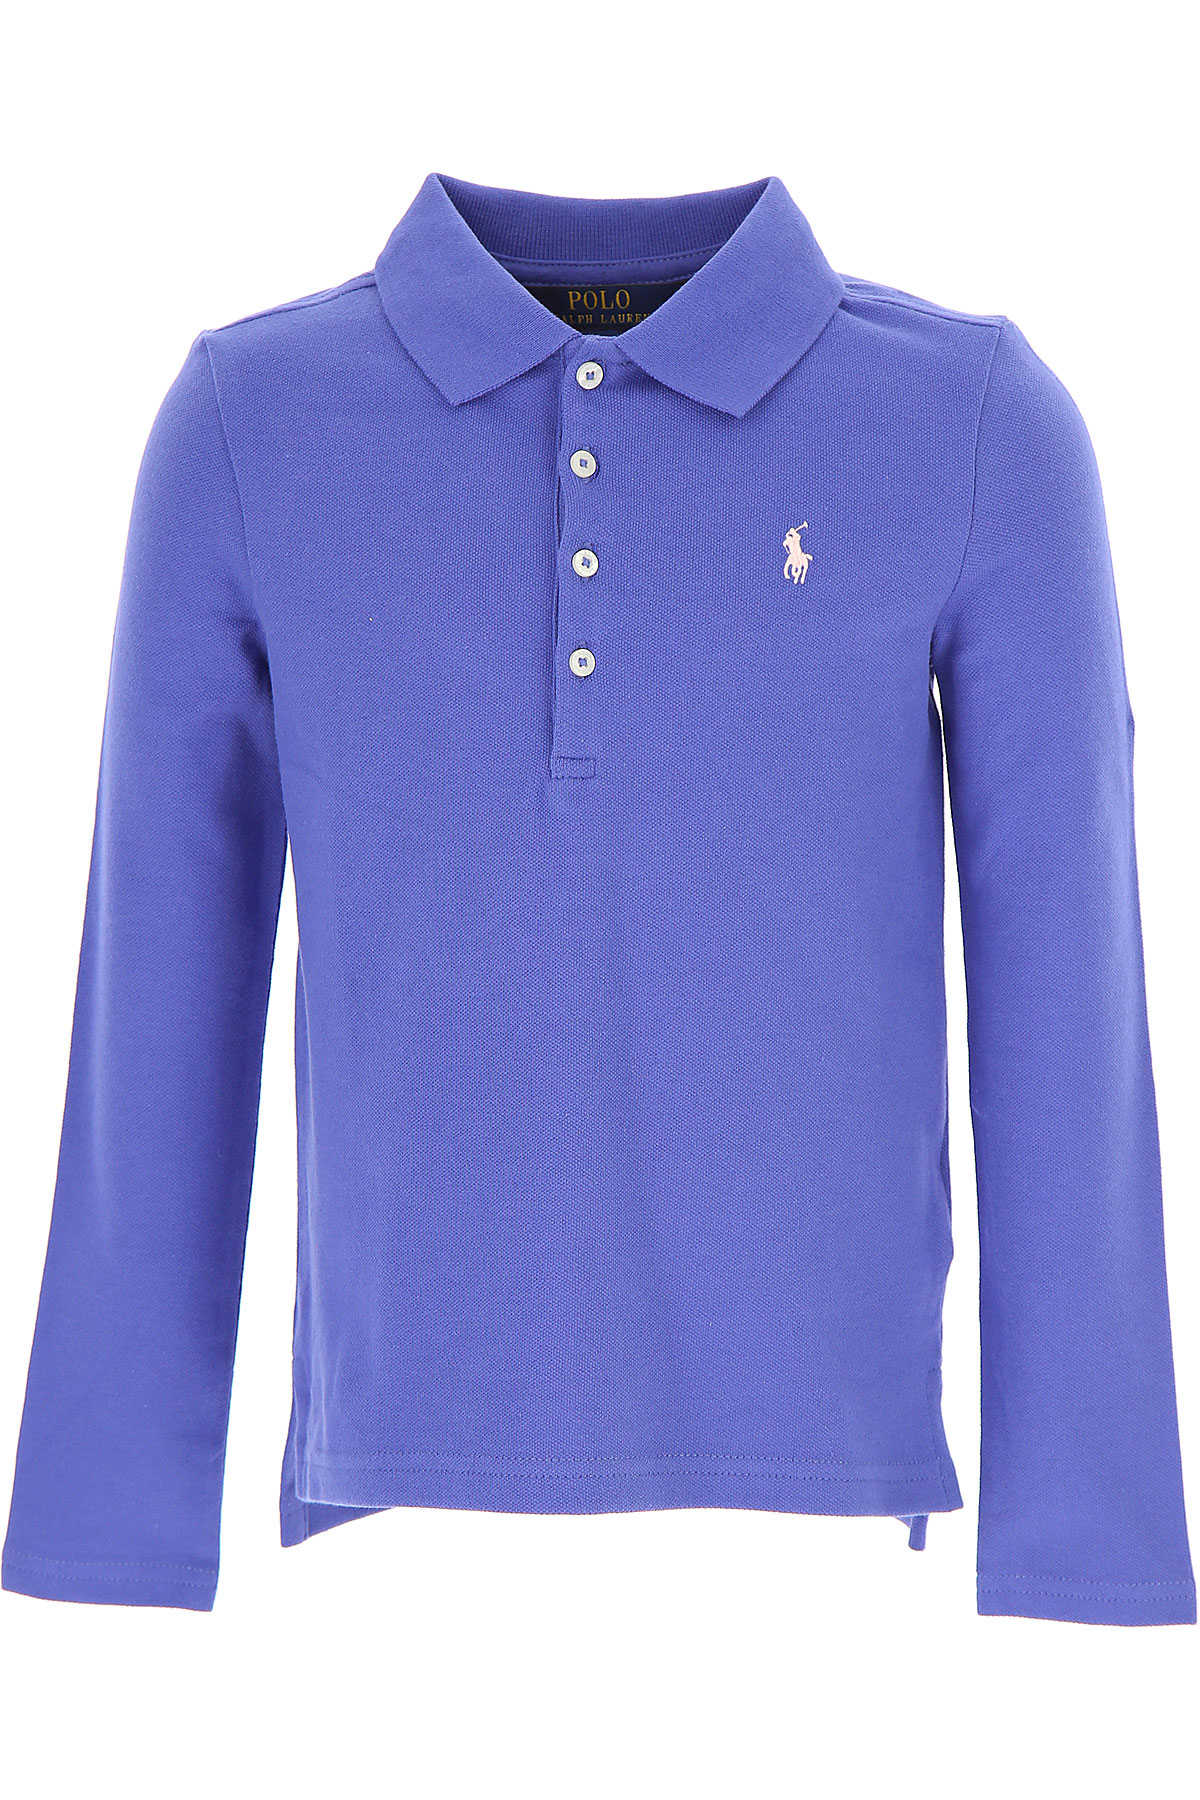 Image of Ralph Lauren Kids Polo Shirt for Girls On Sale in Outlet, Blue Melange, Cotton, 2017, 2Y 3Y 5Y 6Y